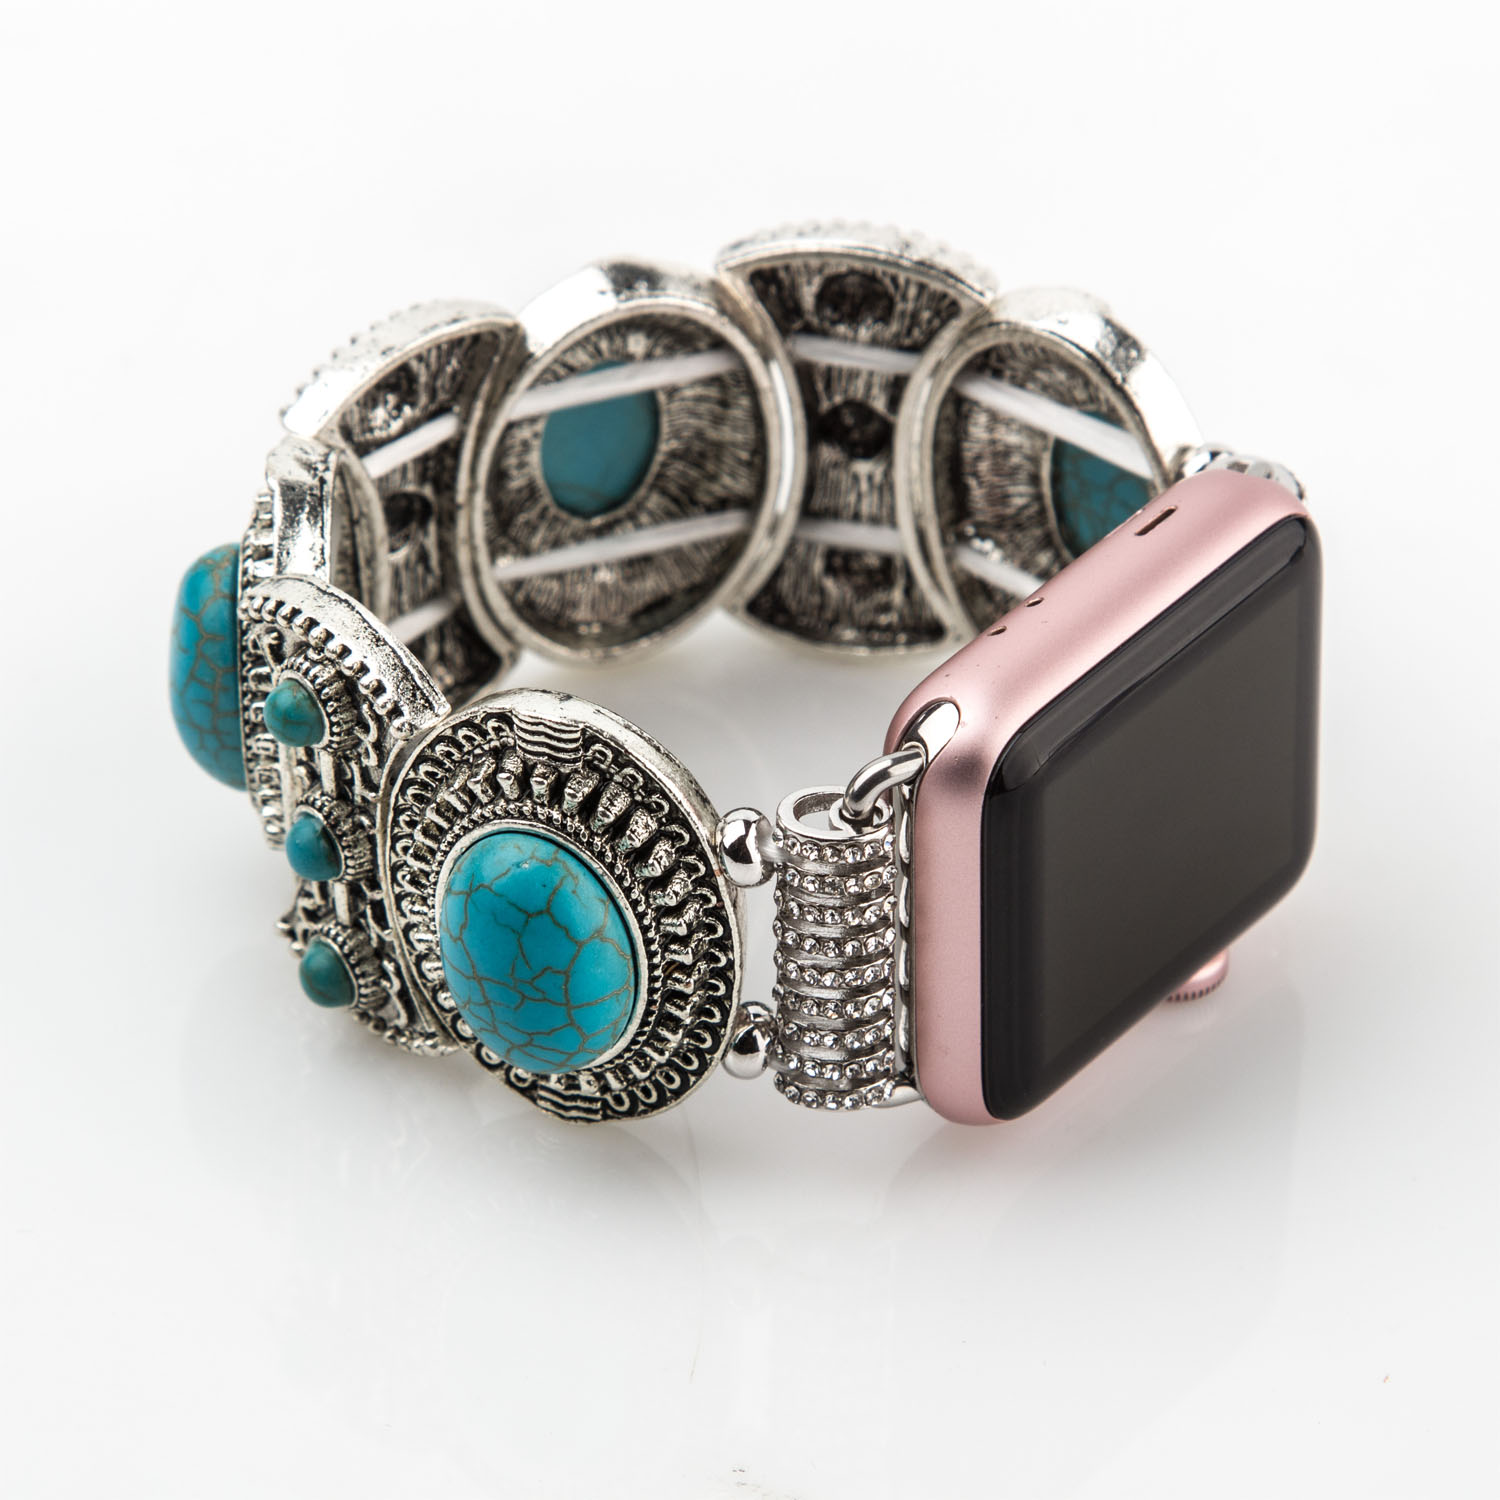 bracelet apple serie 3 retro turquoise stretch bracelet for apple series 3 2438